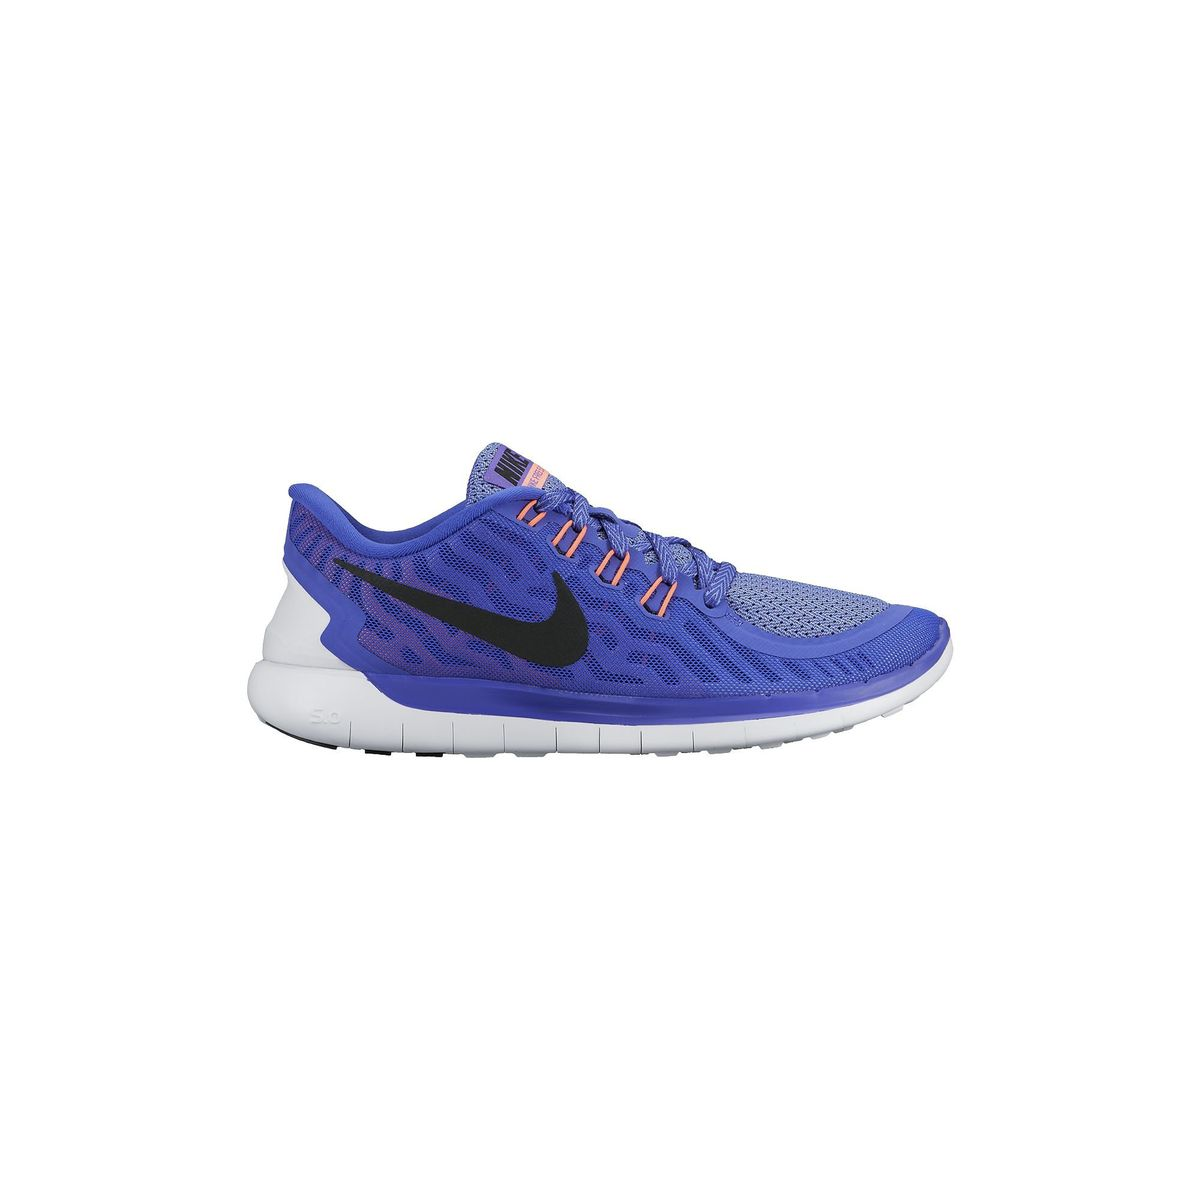 a2672338ac87 Women s Nike Free 5.0 Running Shoe